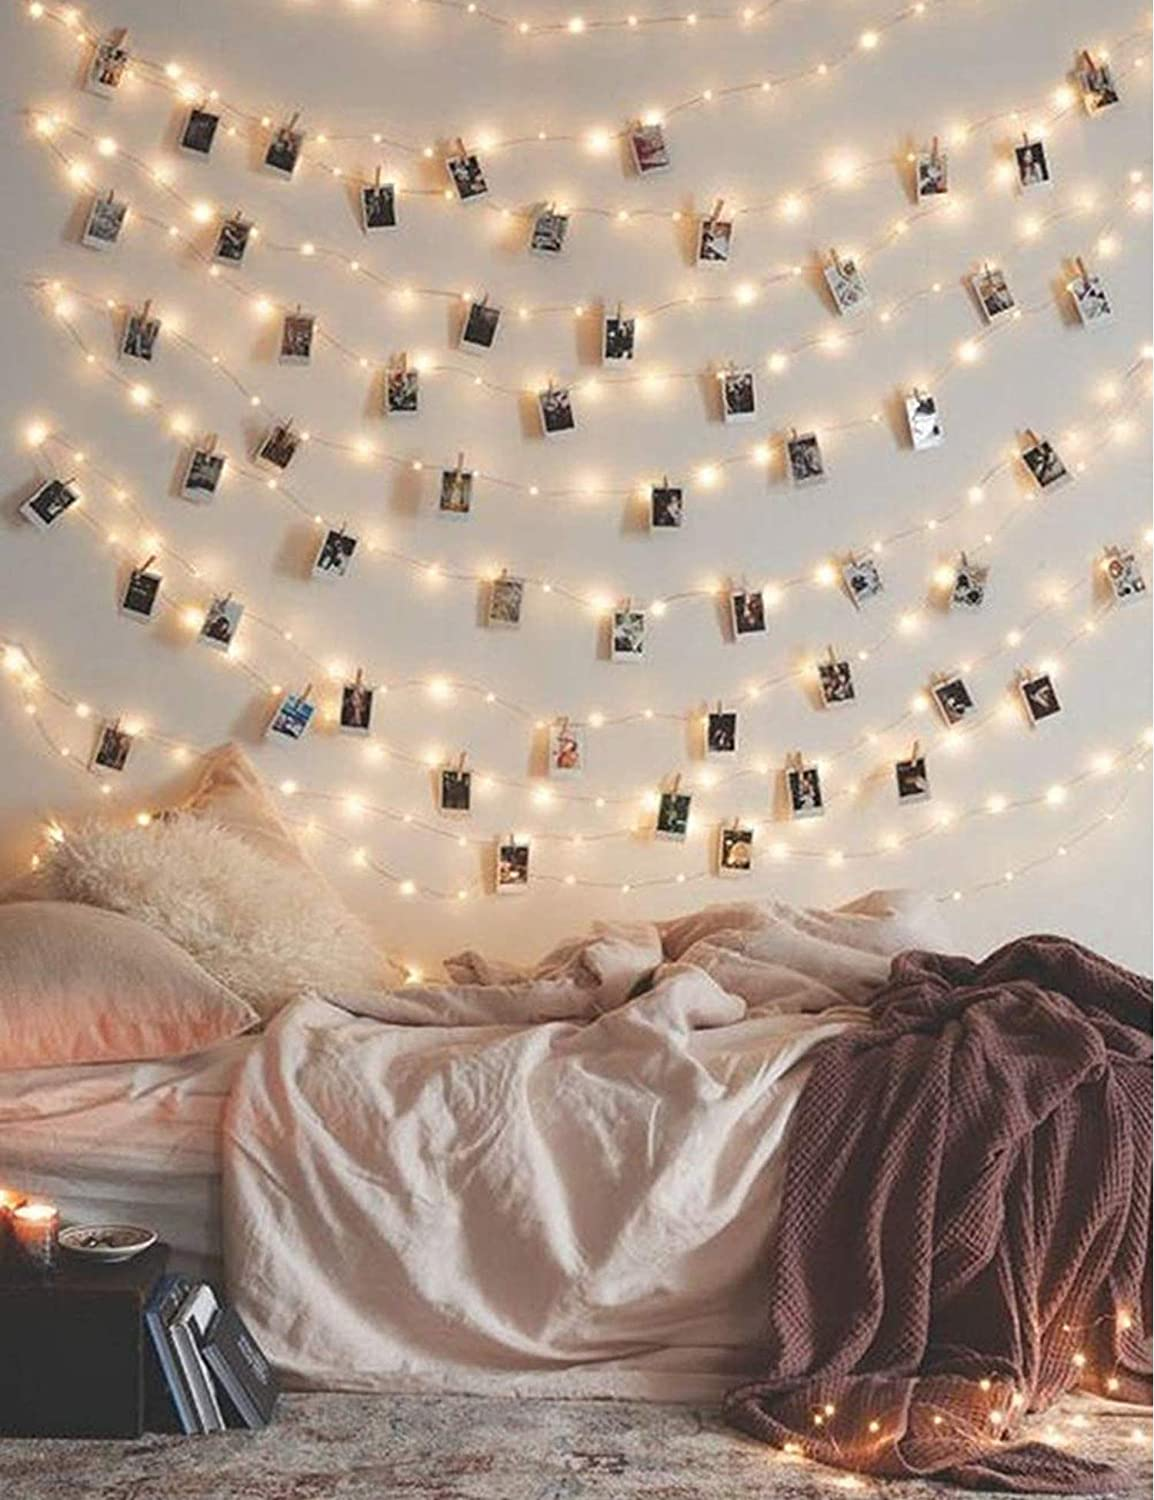 Amazon Com Photo Clip String Lights 17ft 50 Led Fairy String Lights With 50 Clear Clips For Hanging Pictures Photo String Lights With Clips Perfect Dorm Bedroom Wall Decor Wedding Decorations Home Improvement